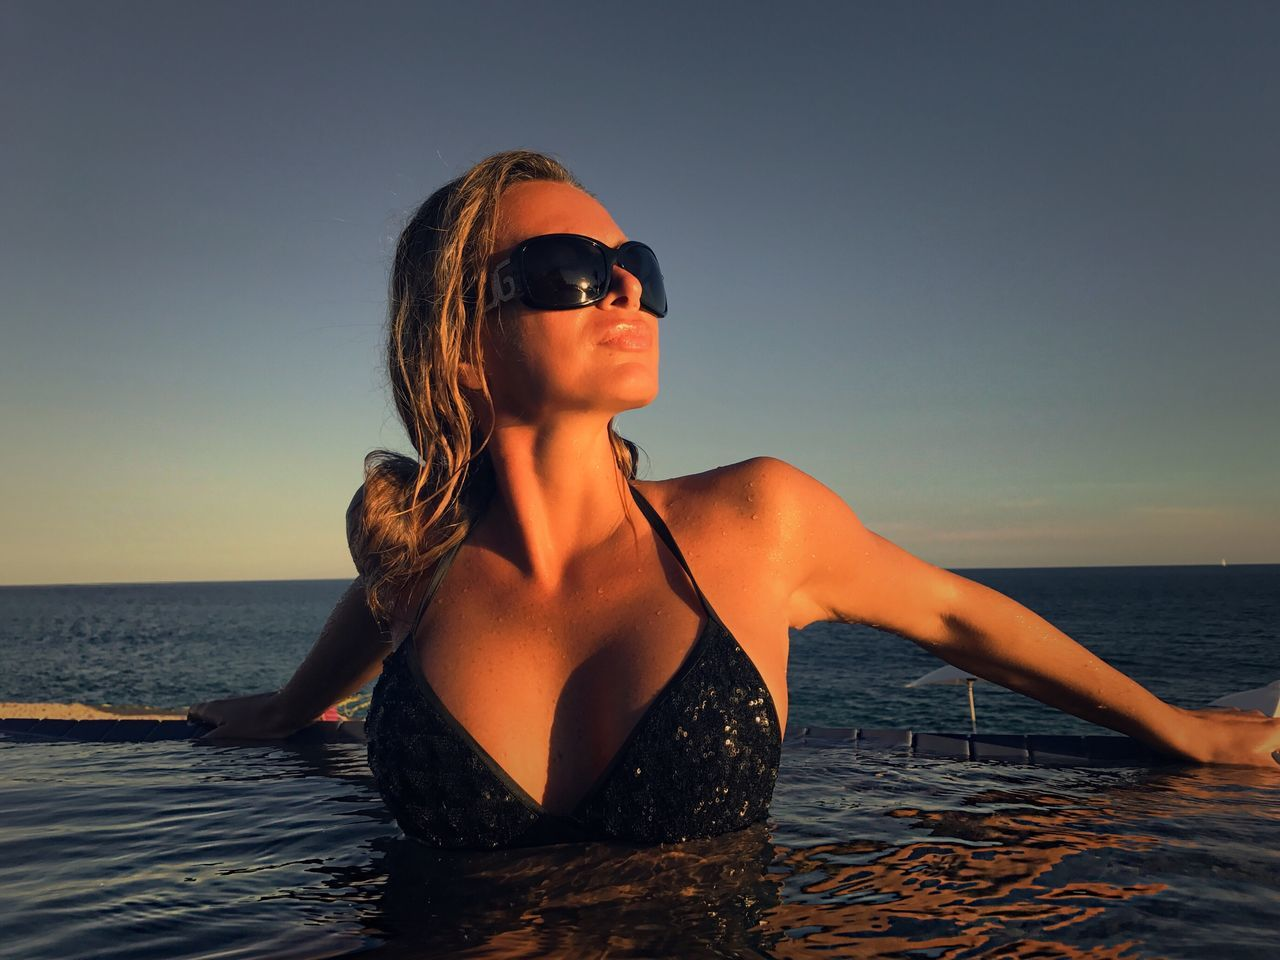 Infinity Pool Swimming Pool Vacations Evening Sunset Ocean Woman Leisure Activity Lifestyles Sea Real People Water Horizon Over Water One Person Clear Sky Sunglasses Outdoors Beach